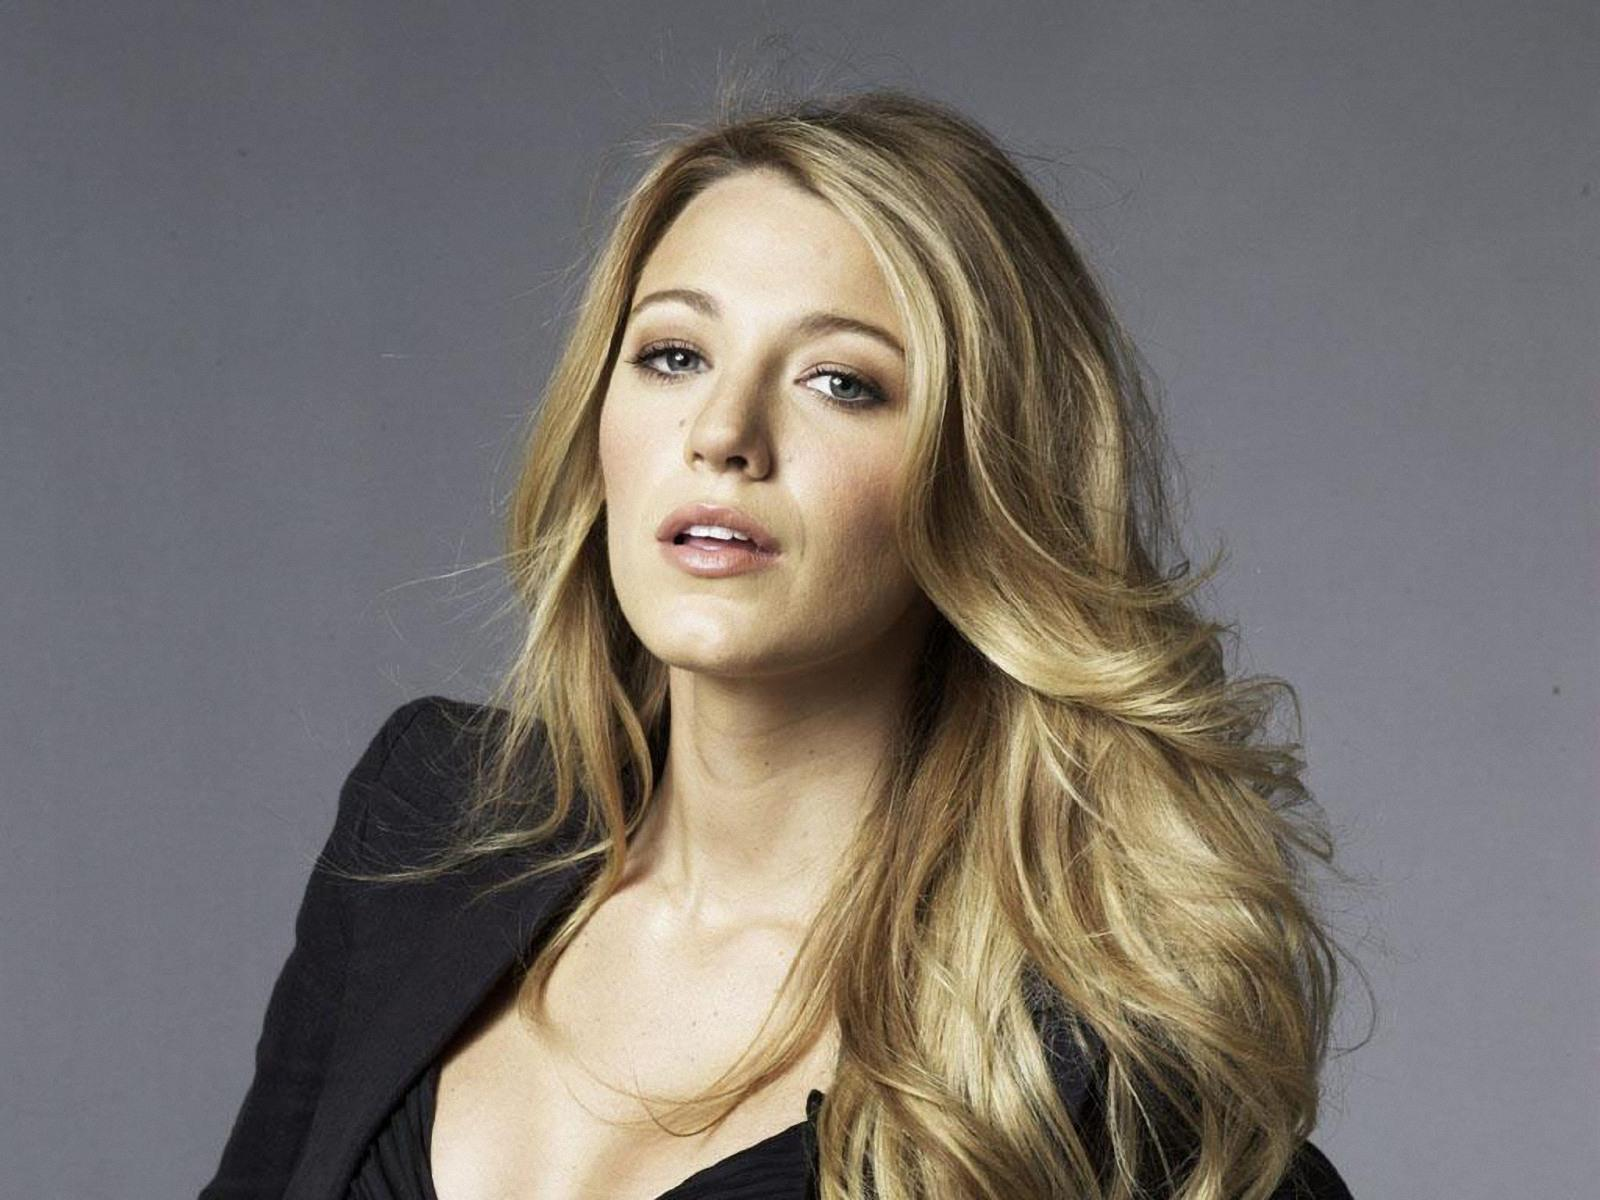 blake lively close-up 2 wallpapers | blake lively close-up 2 stock